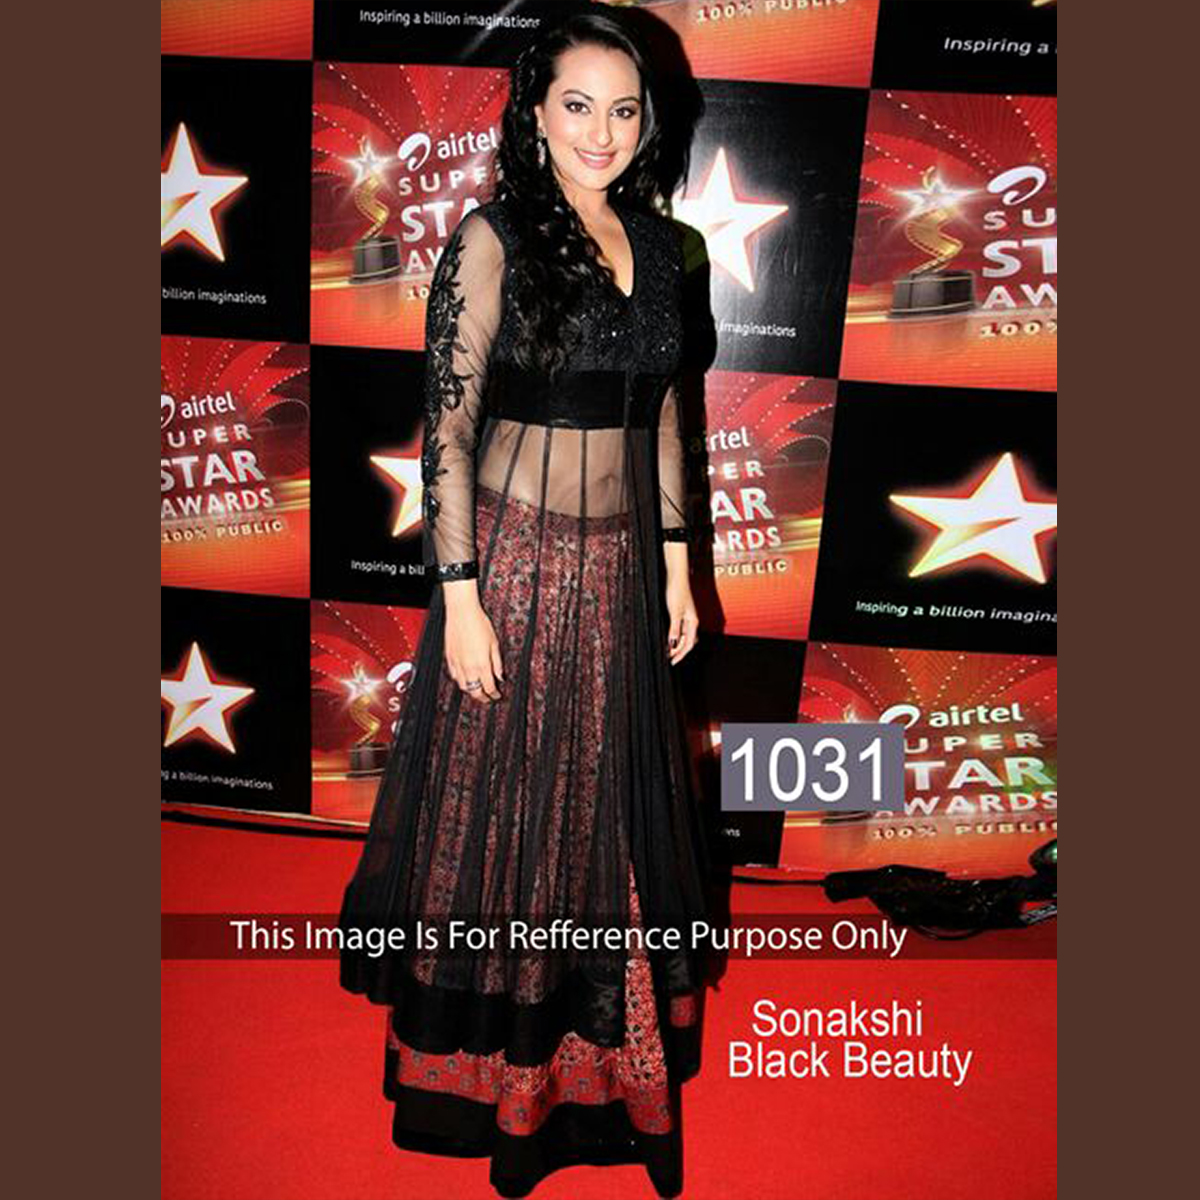 Sonakshi Sinha Stunning Party Wear Black Dress ET-1031